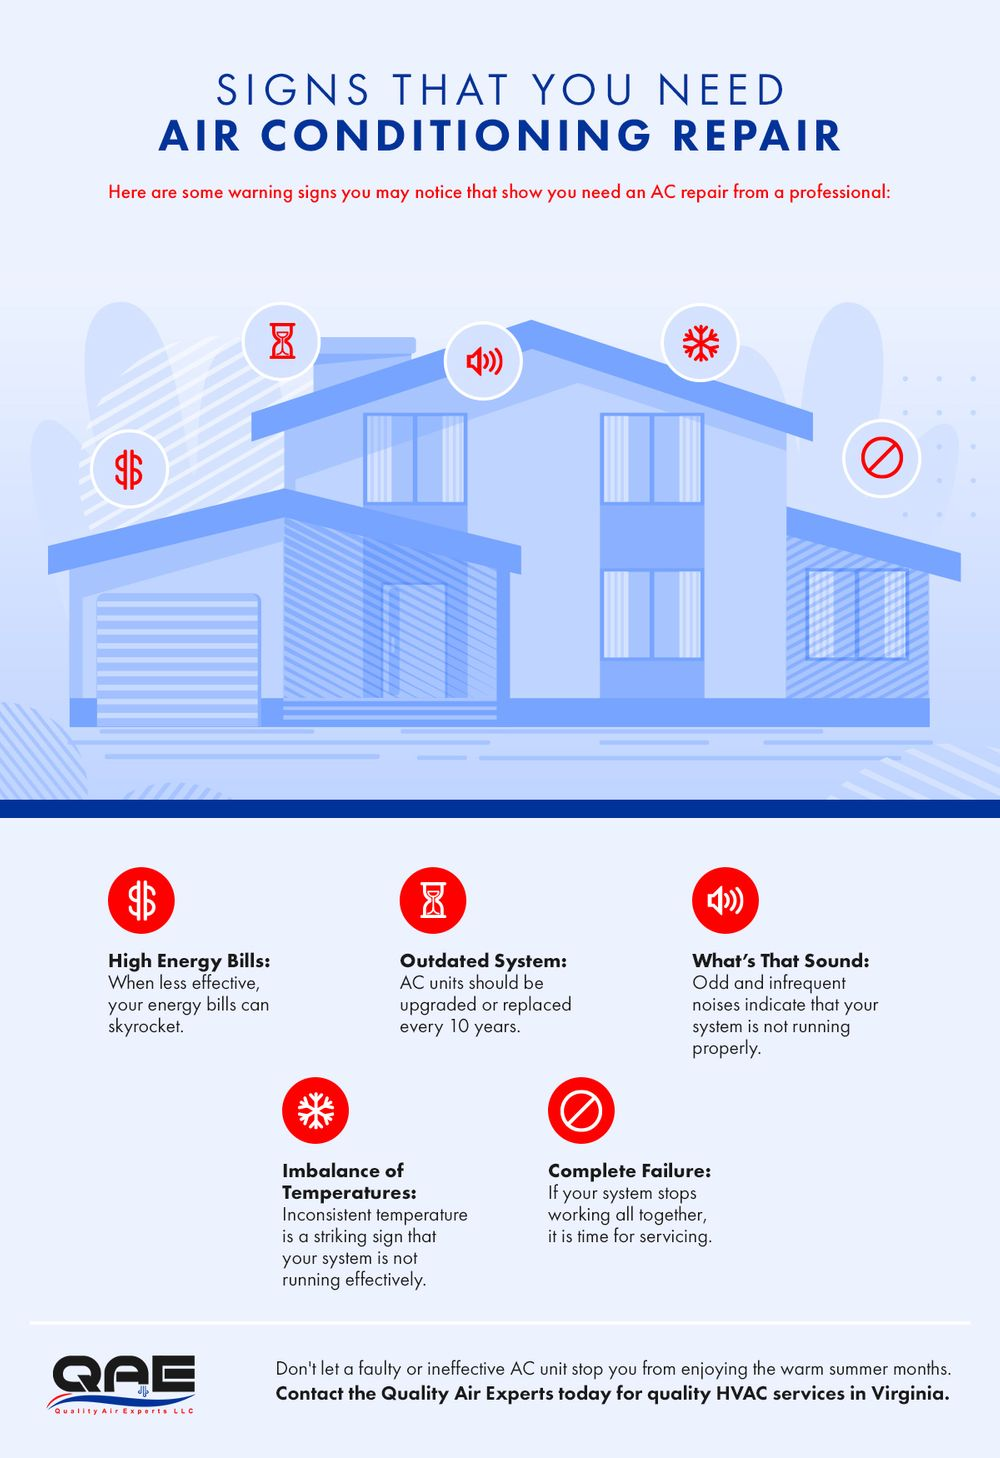 Signs That You Need Air Conditioning Repair Infographic